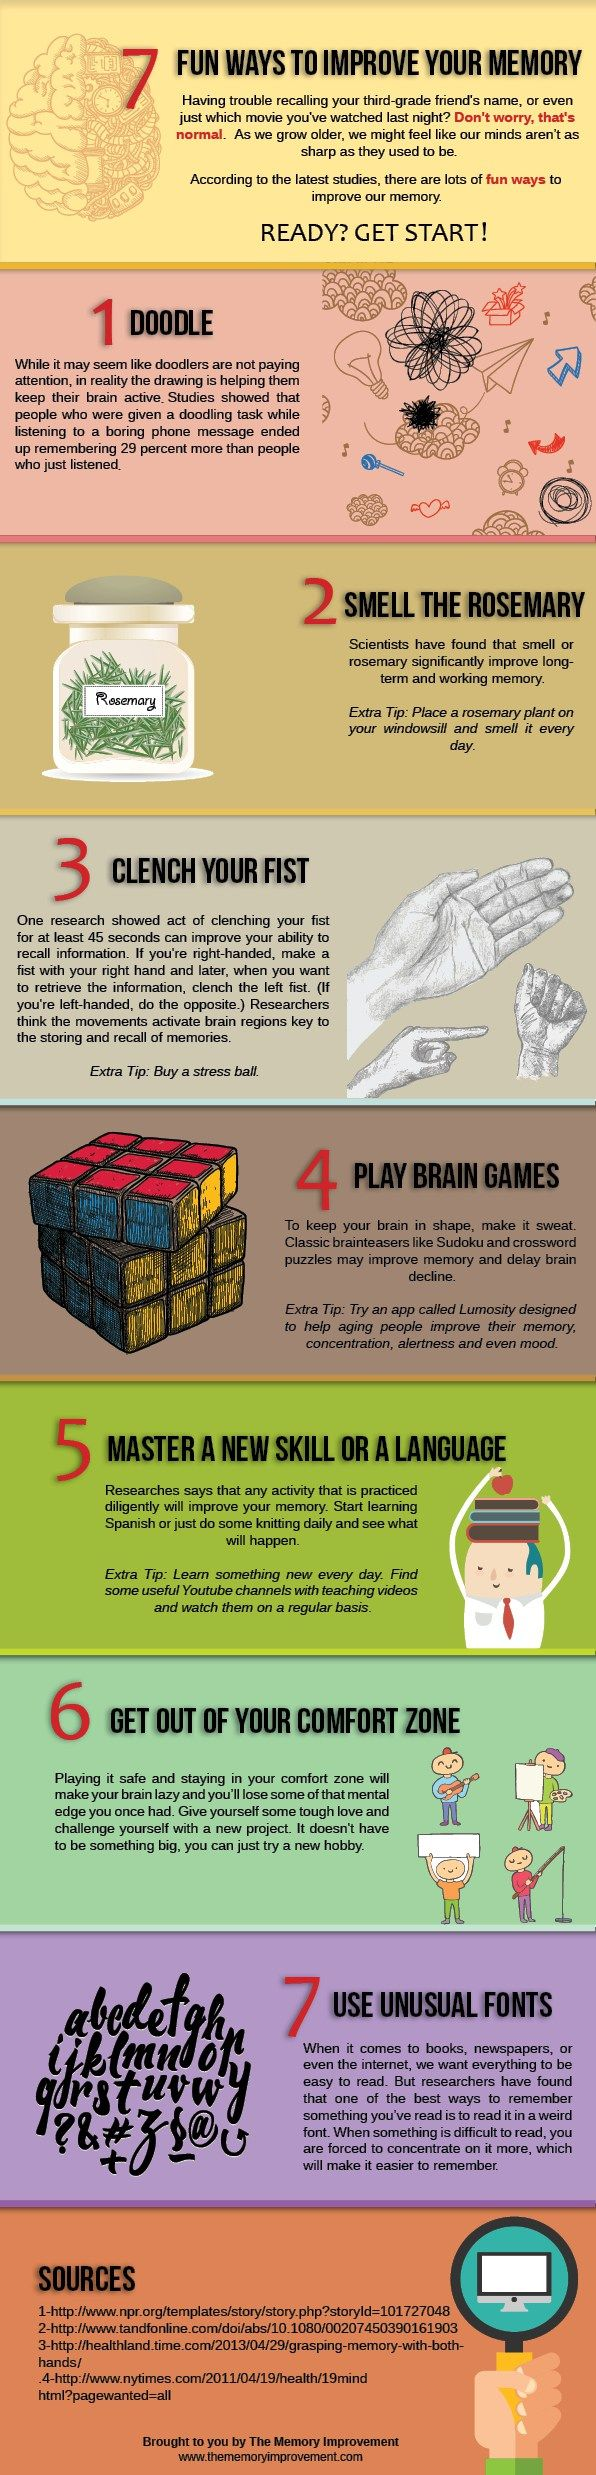 7 Fun Ways To Improve Your Memory